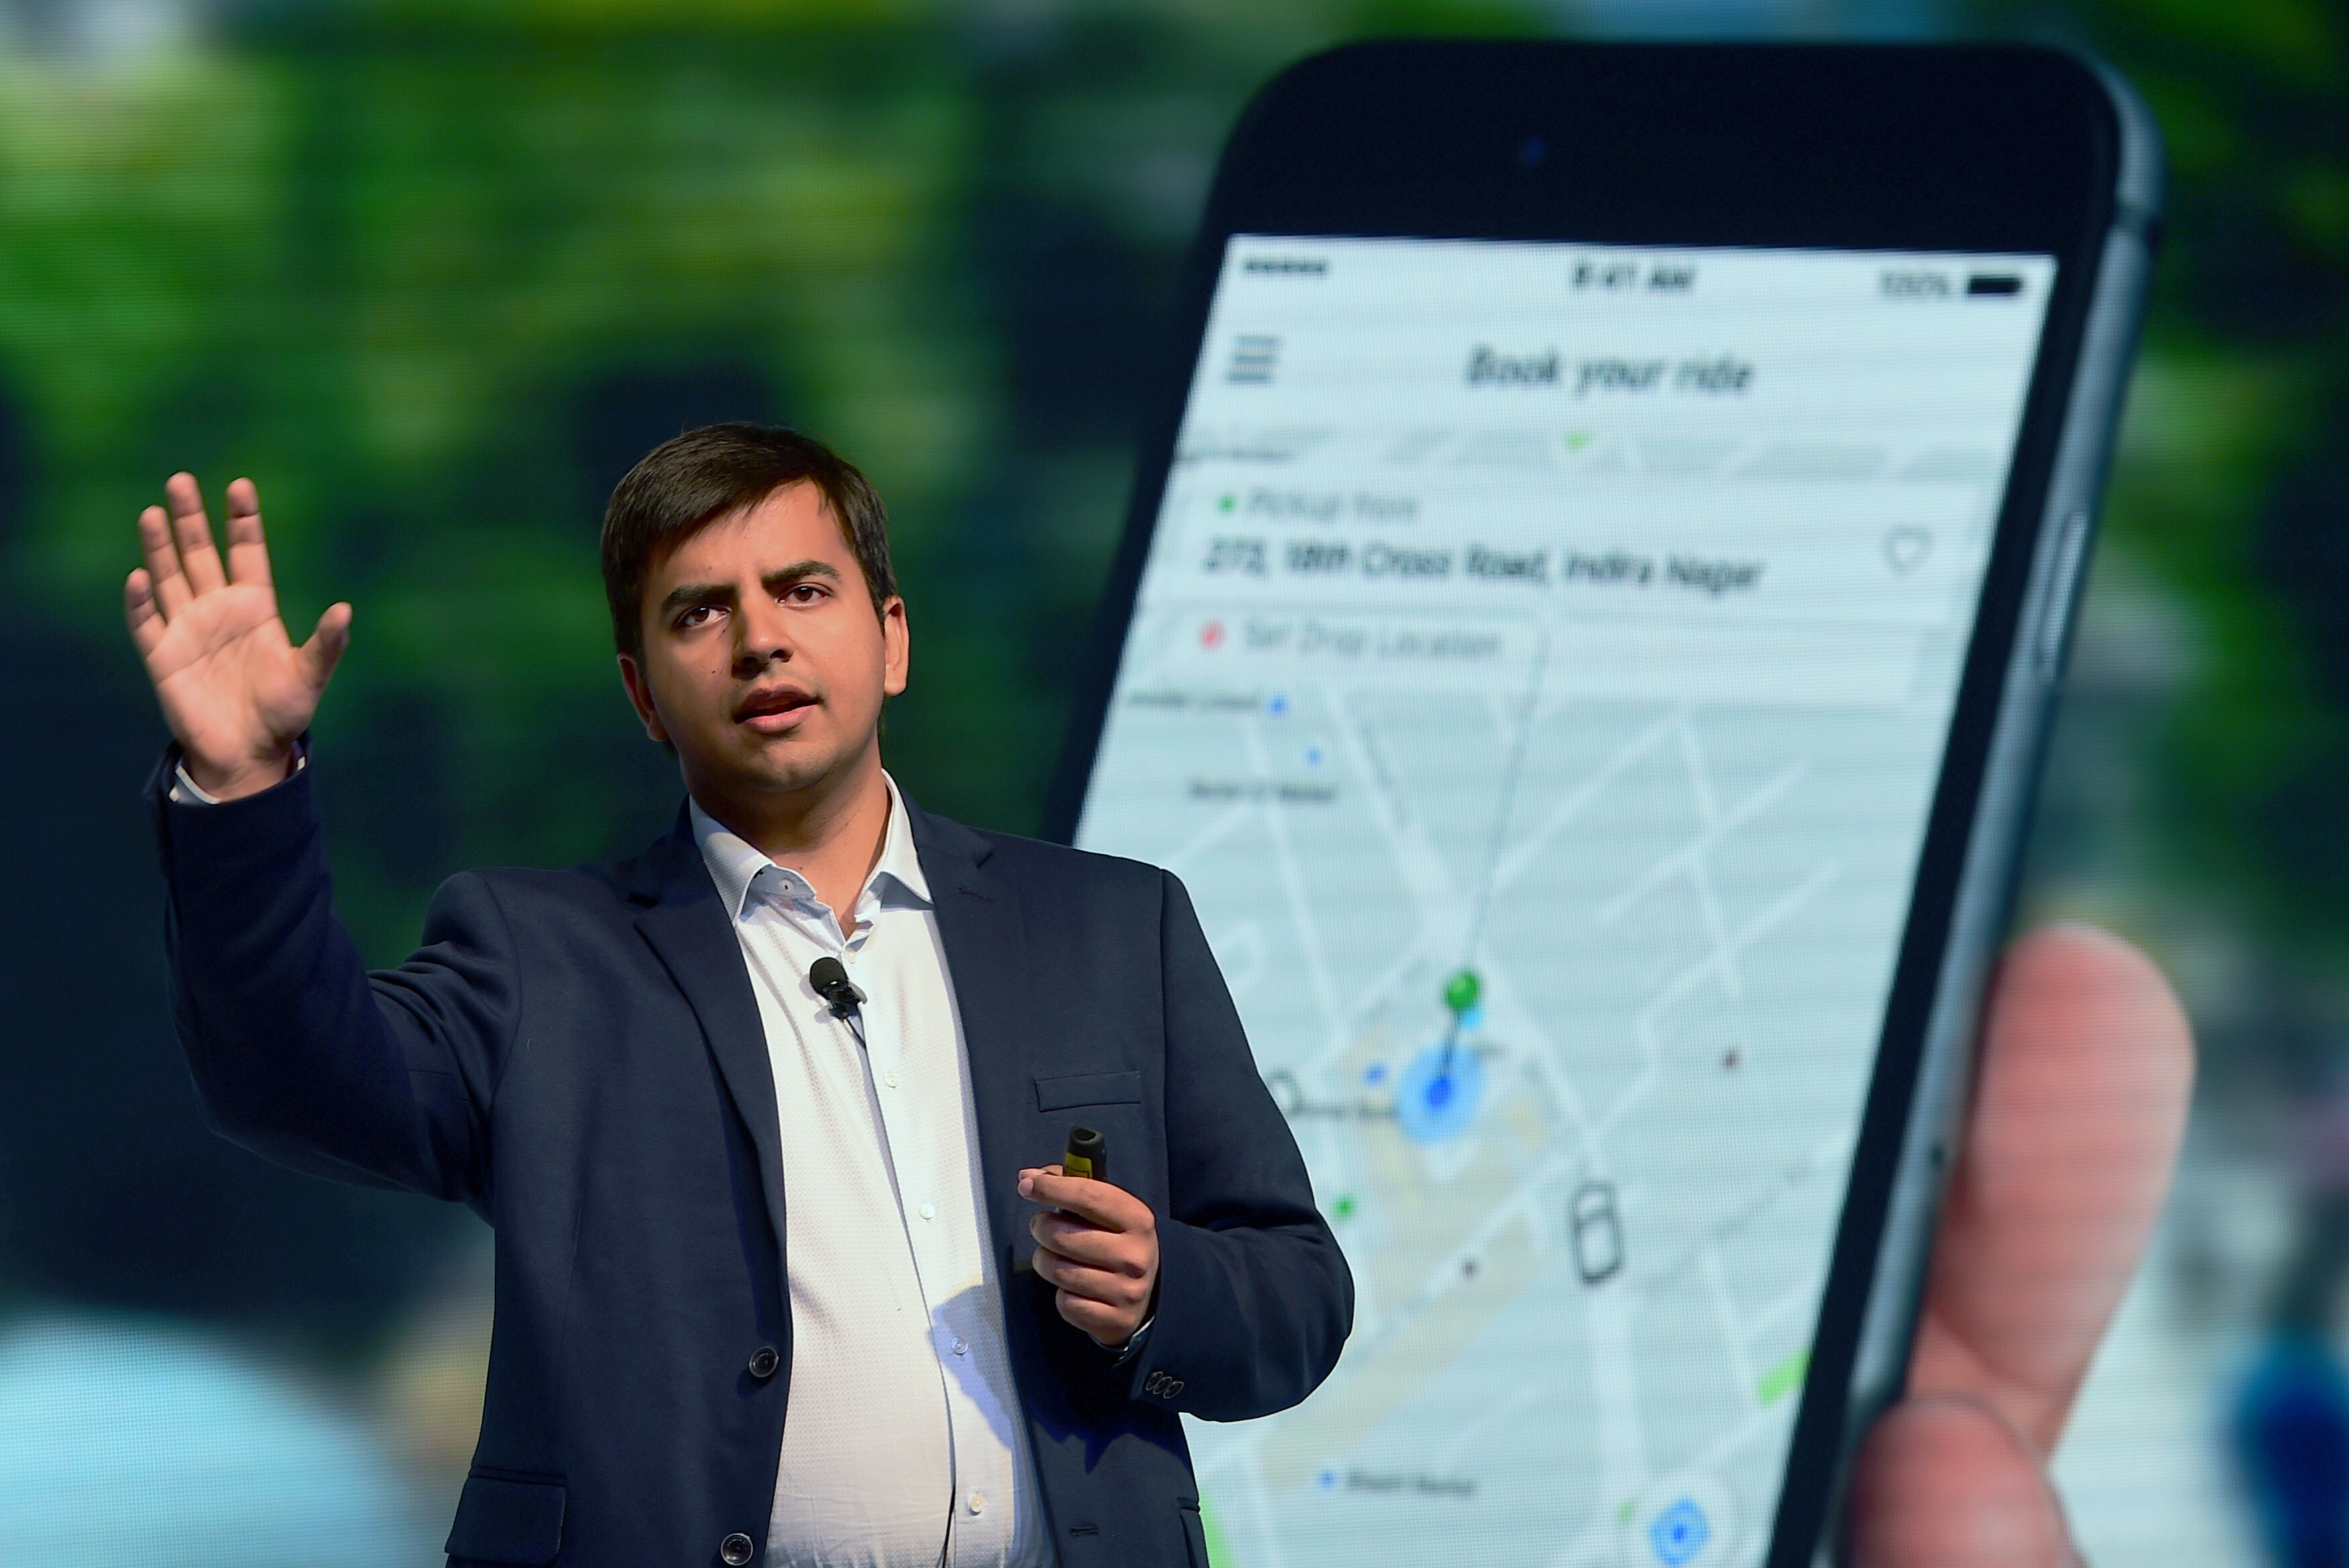 Uber loses London license over safety failures